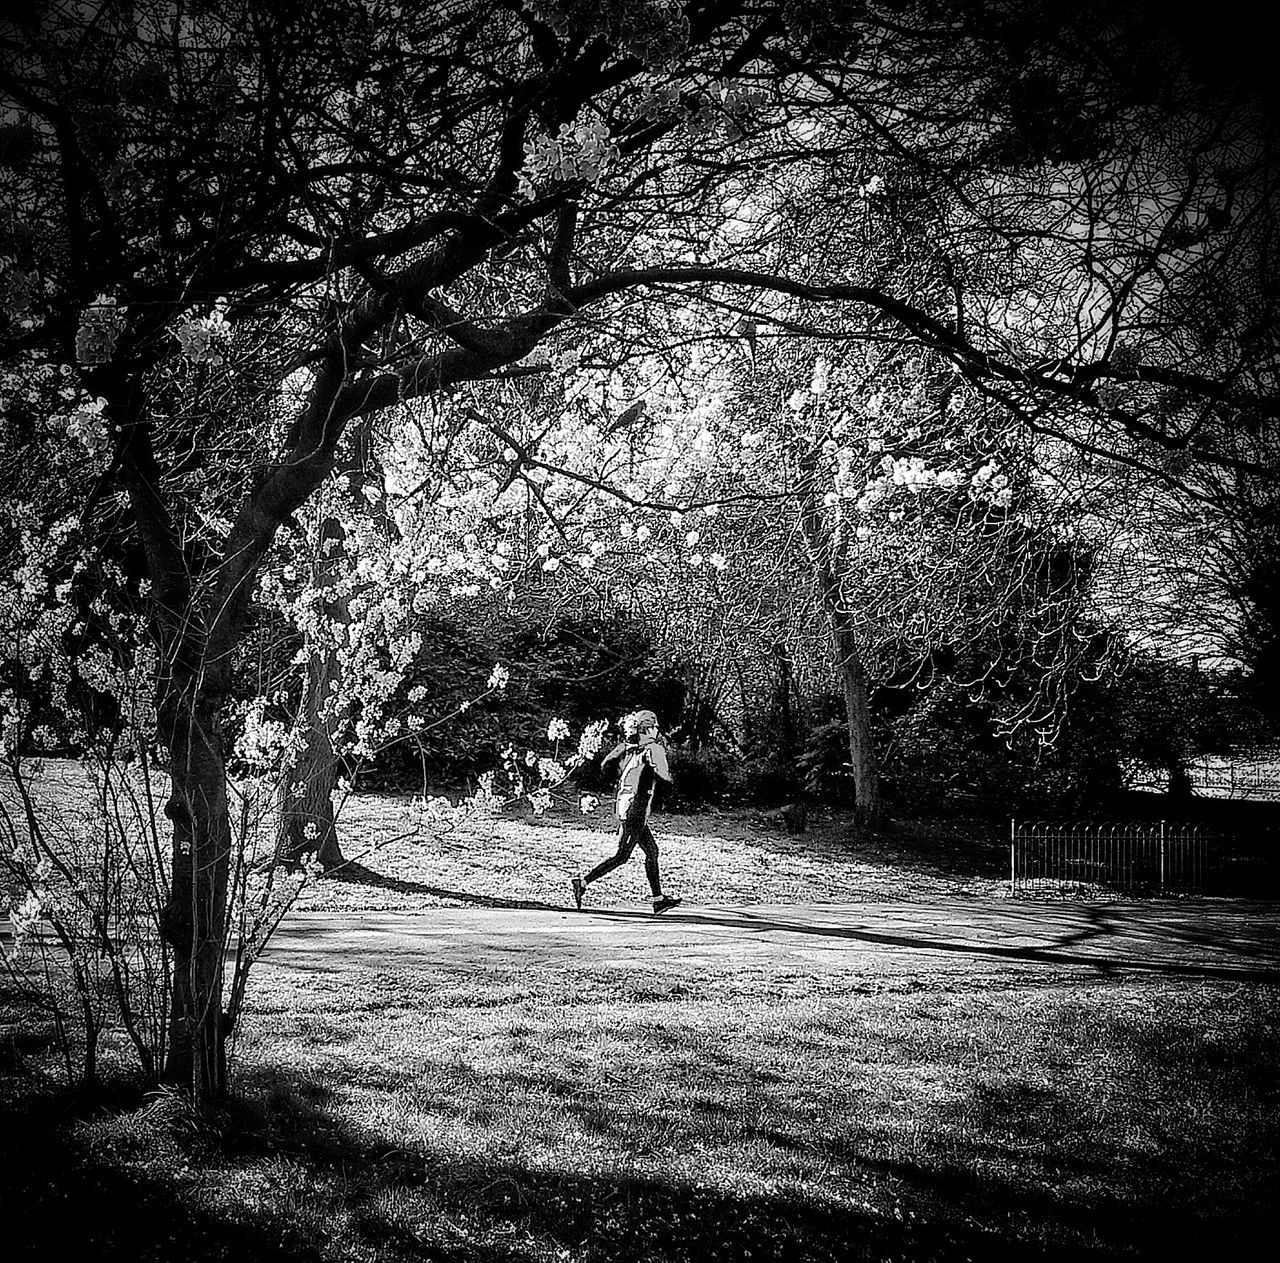 """""""Run, run.."""" Real People Tree Sunlight Outdoors Nature One Person Day Full Length Women Men Sky People Monochrome Photograhy London Lifestyle Streetphoto_color Lifestyles Blackandwhite Photography Blackandwhite Shootermag_uk Black And White Sport Shootermag"""